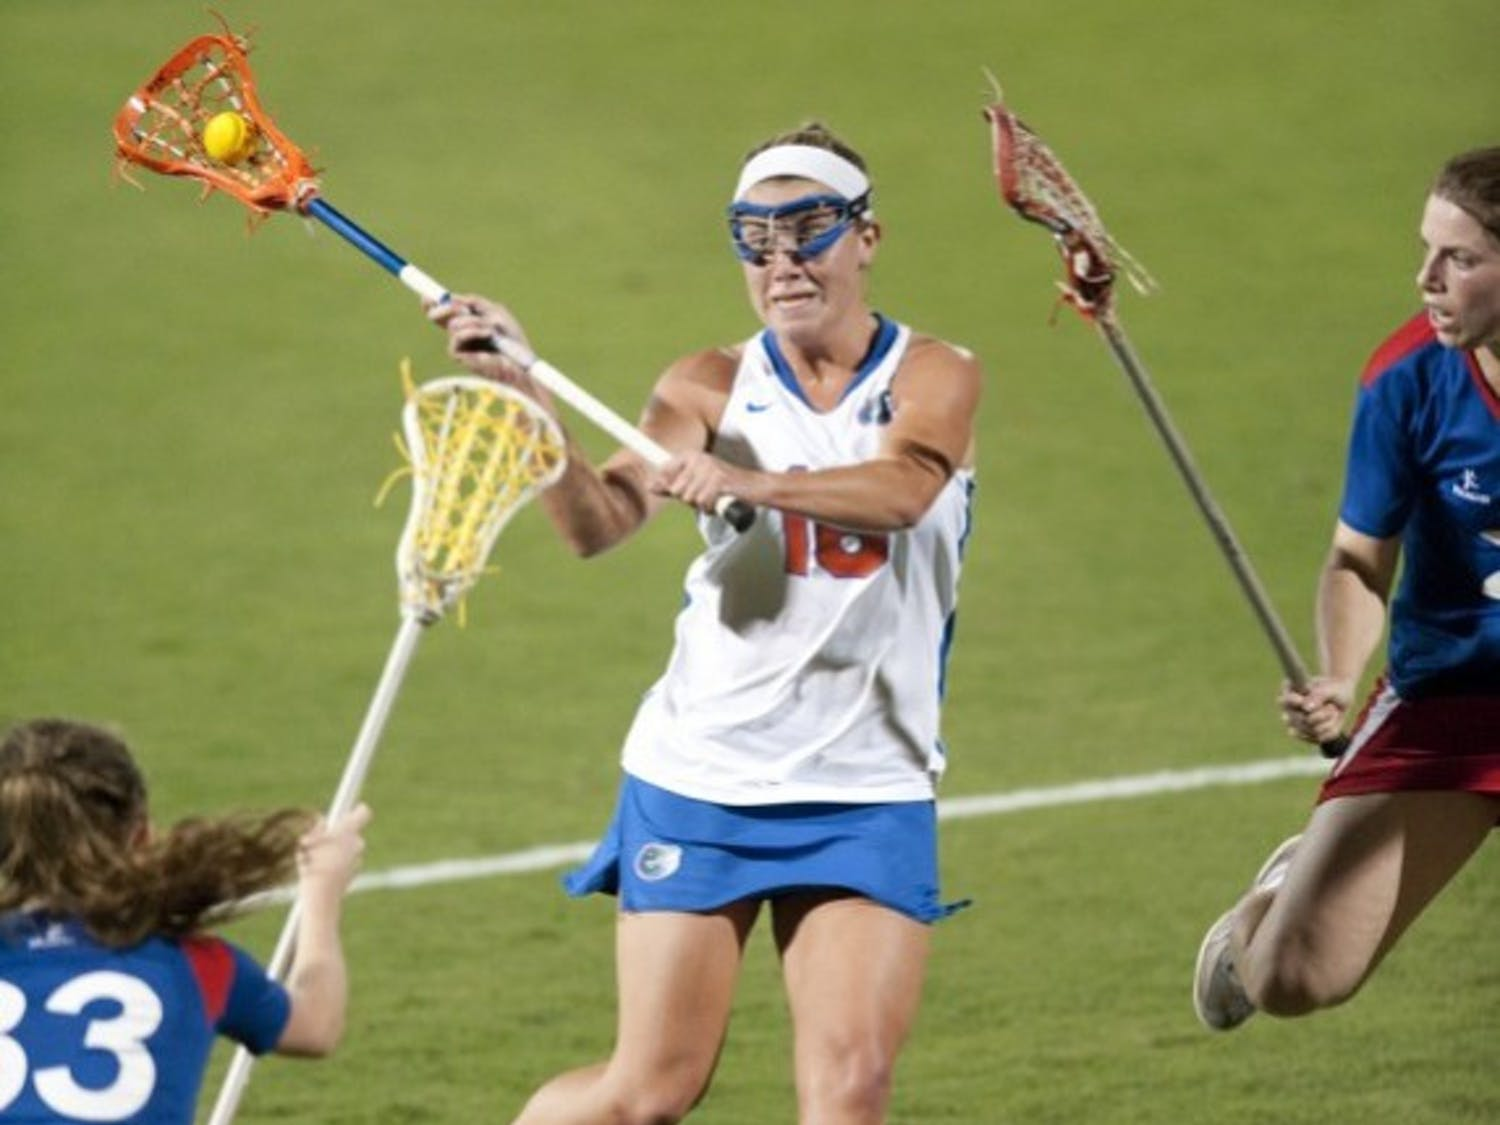 Florida freshman midfielder Nicole Graziano scored four goals in an exhibition win against England on Jan. 26, and coach Amanda O'Leary said she will play Saturday against UNC.